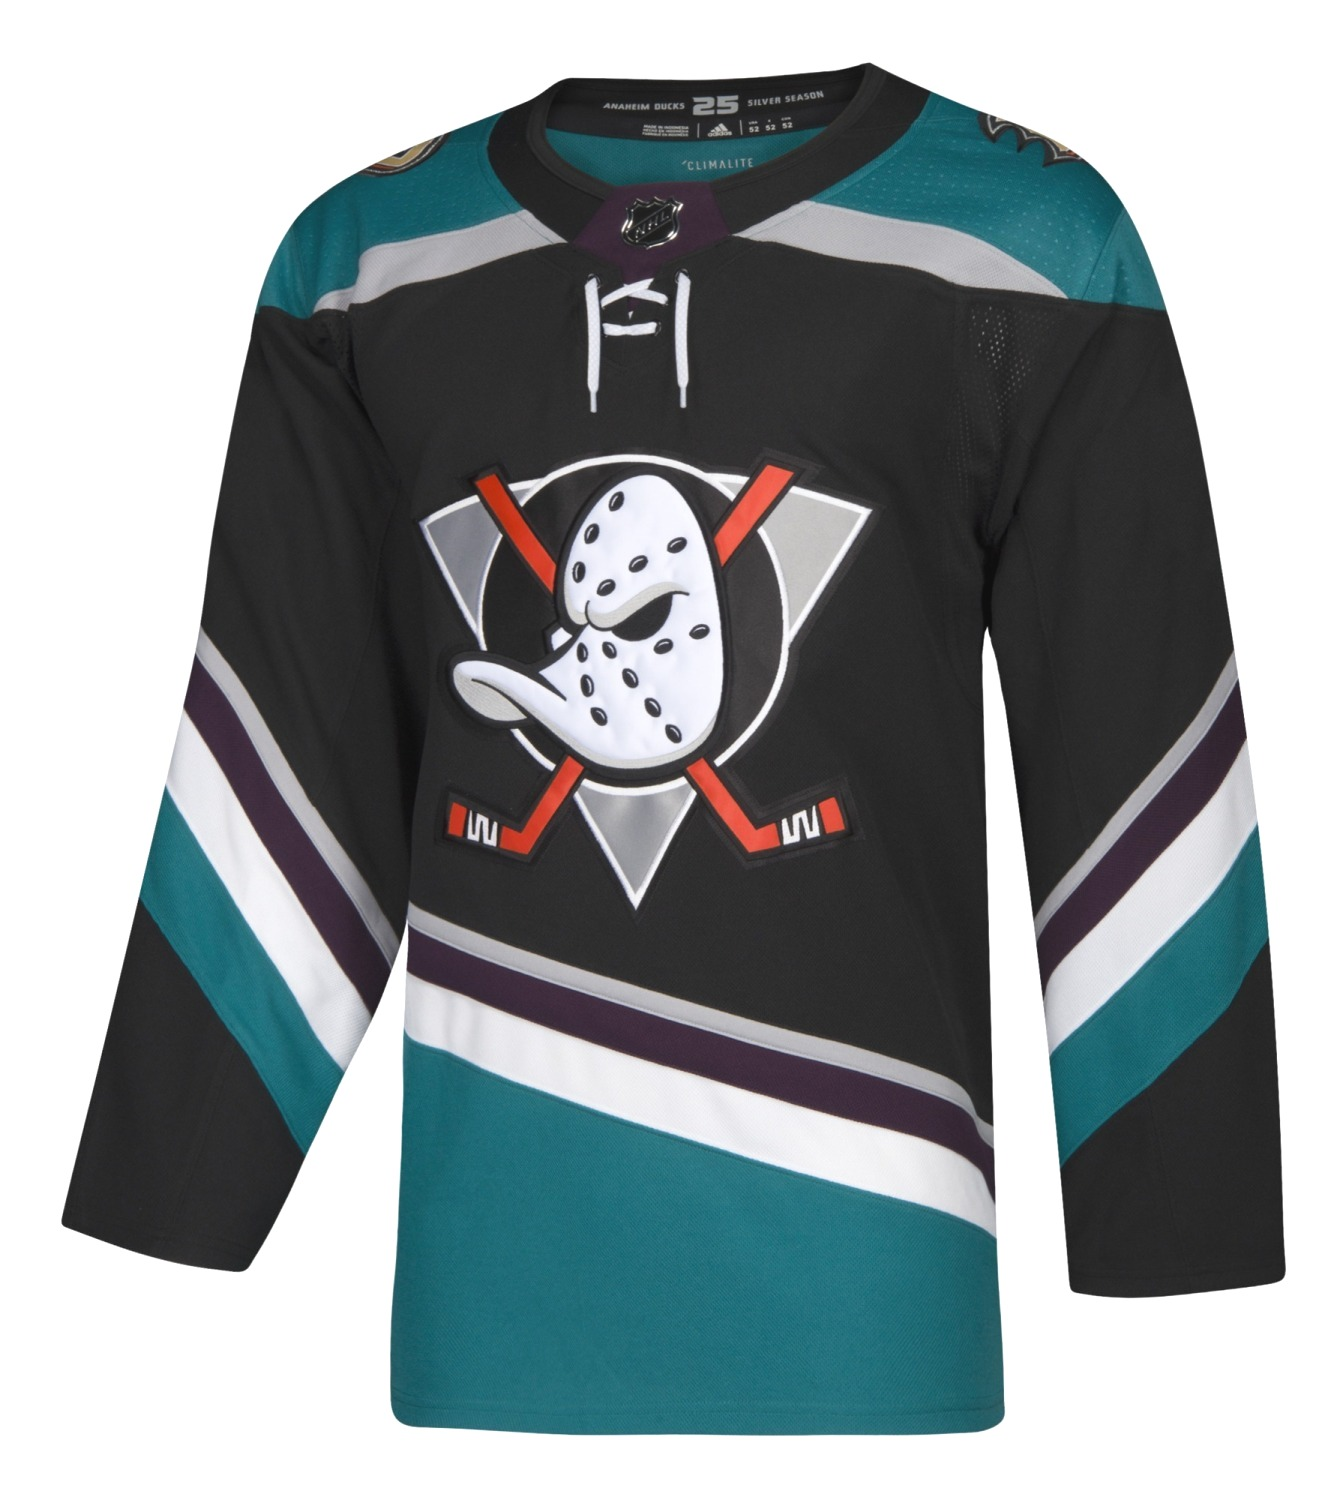 Anaheim Ducks Adidas NHL Men's Climalite Authentic Alternate Hockey Jersey